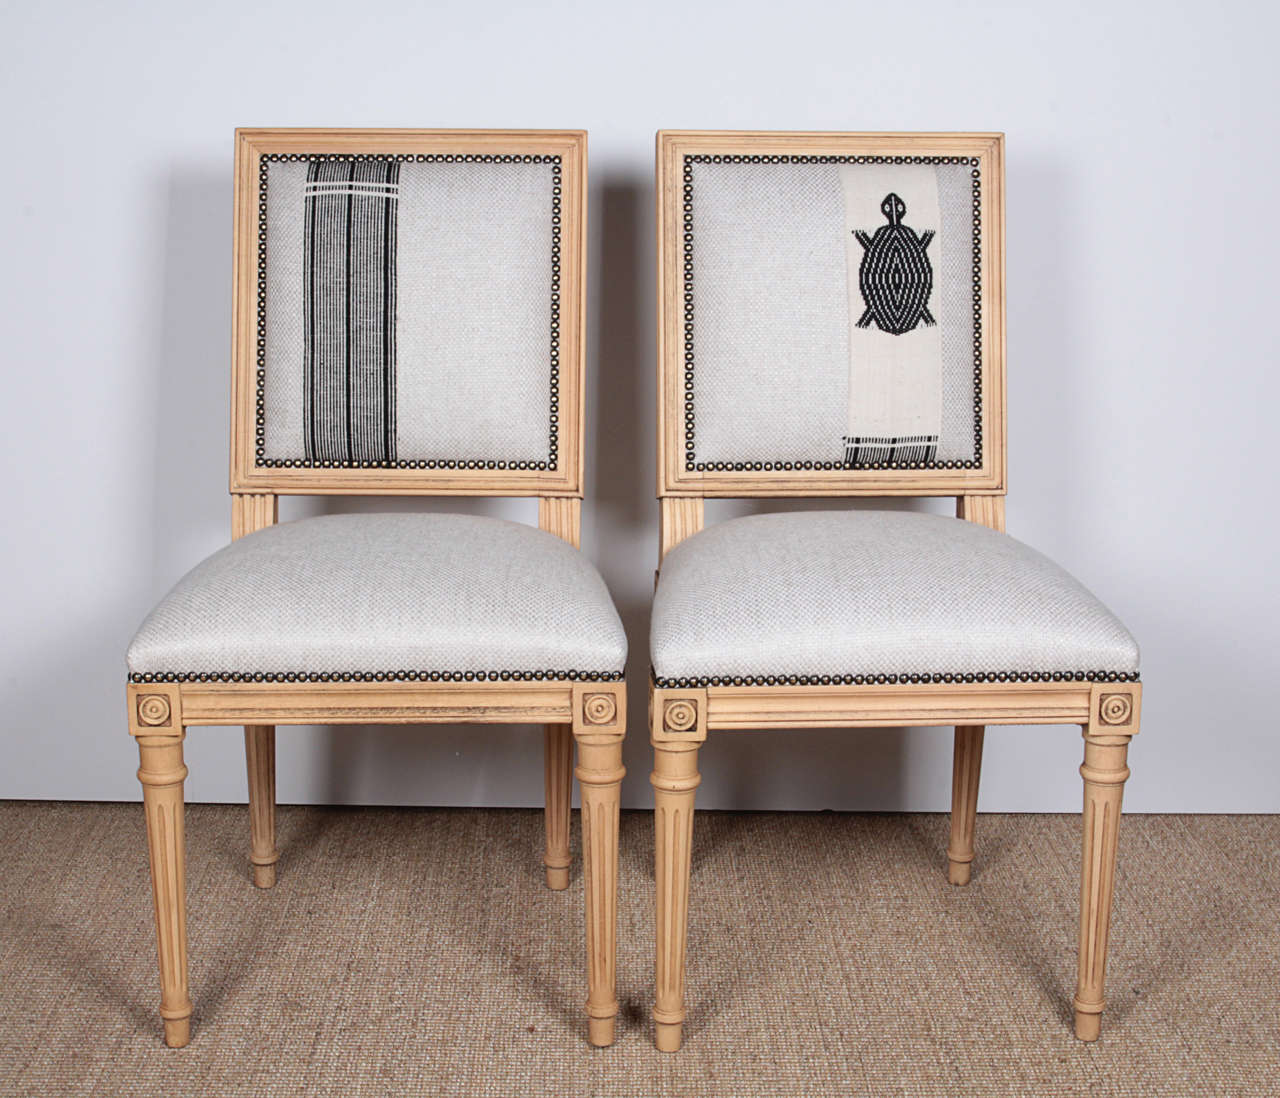 antony todd sofa restoration hardware belgian slope arm review collection white linen louis xvi dining chairs